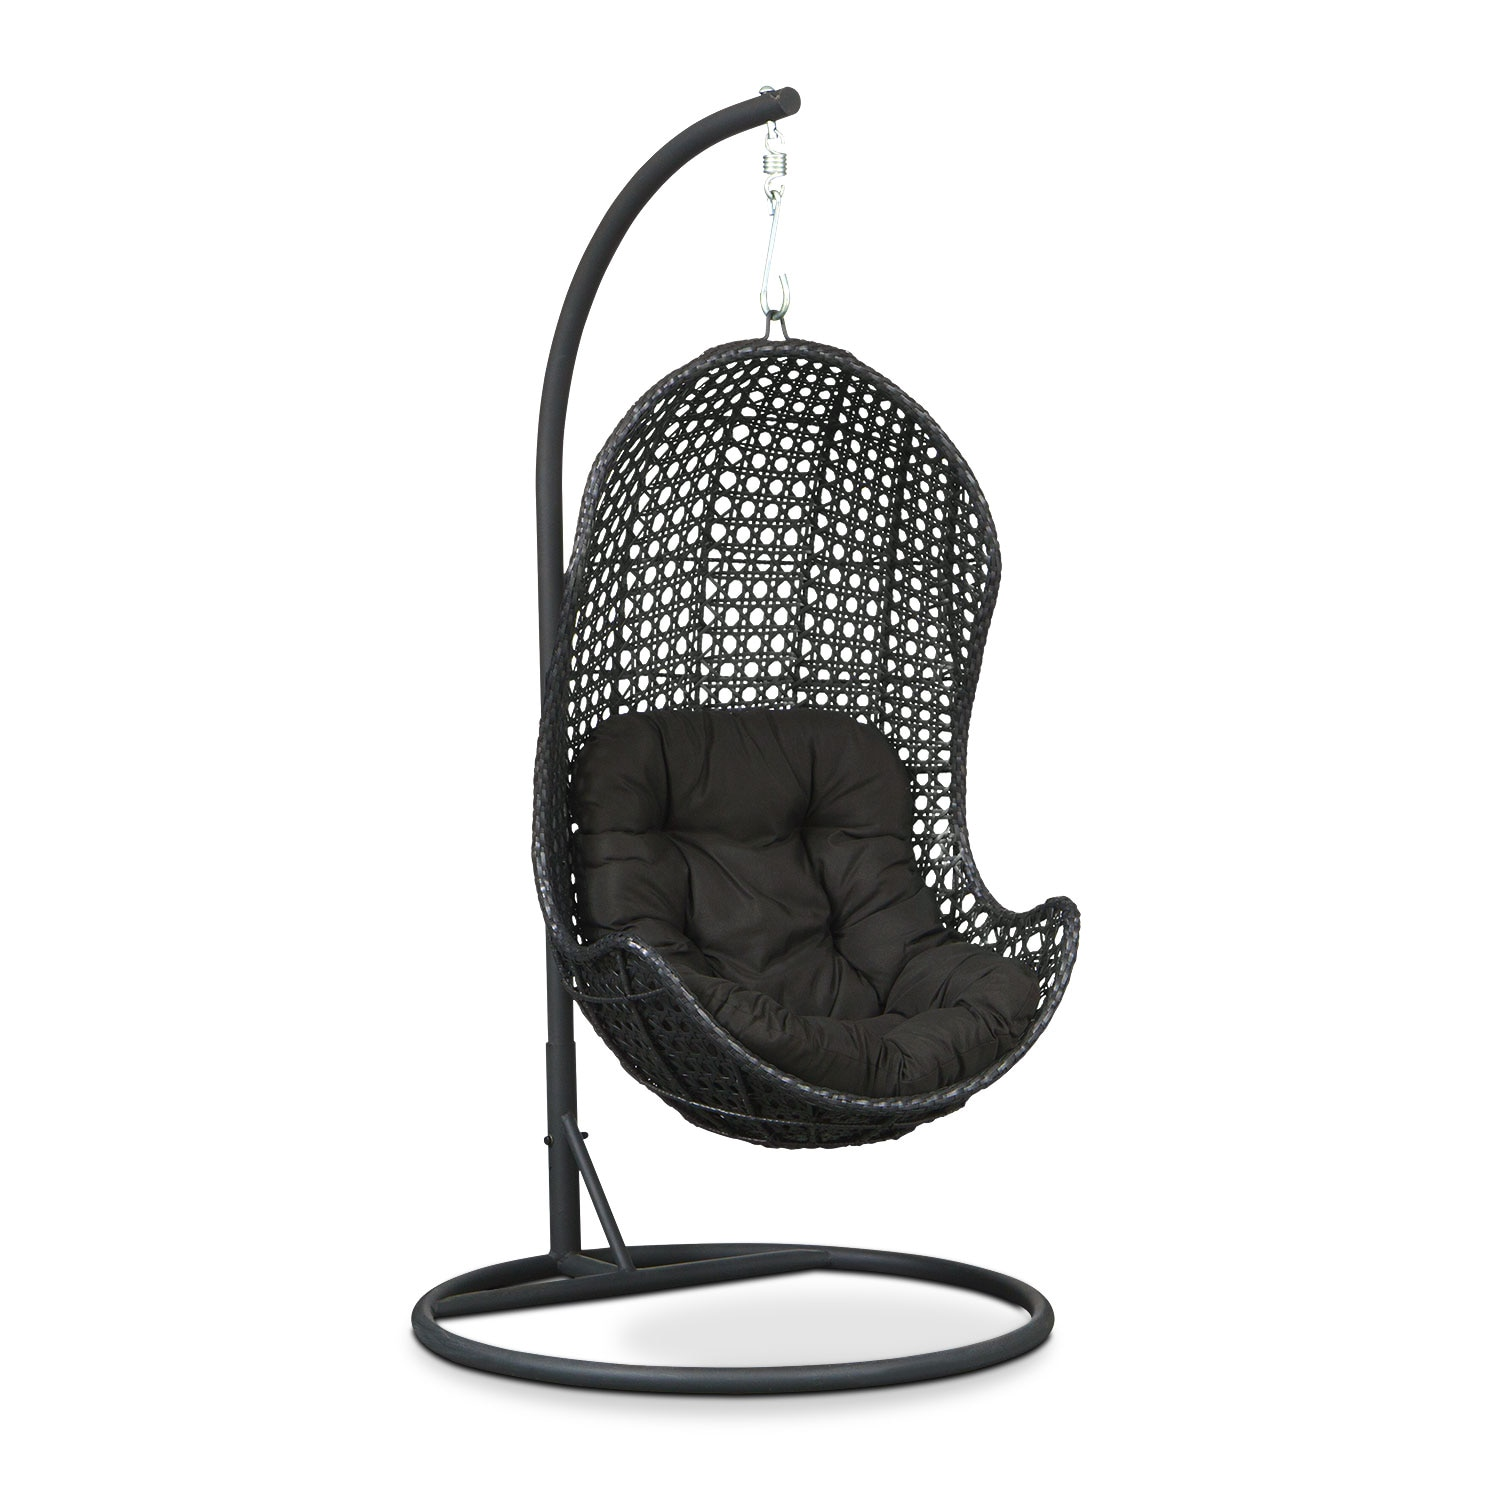 Outdoor Furniture - Kona Outdoor Egg Chair - Black